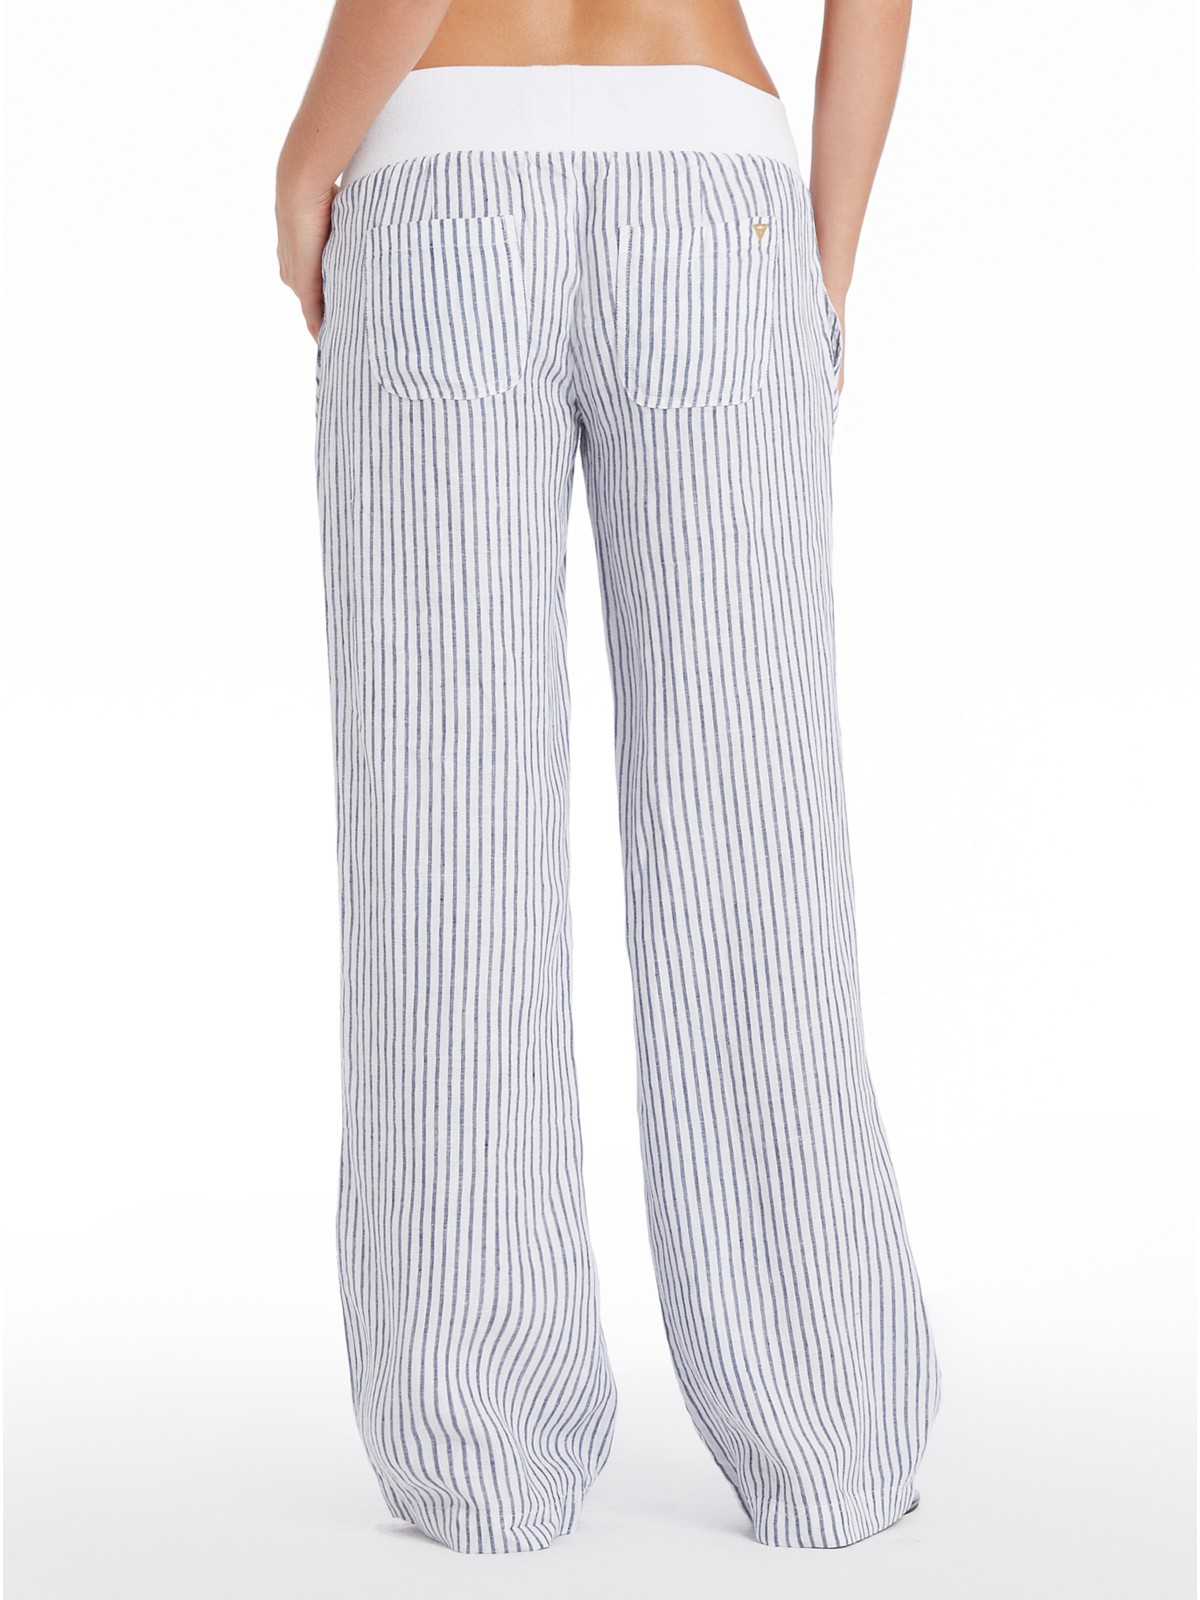 Excellent Guess Women39s White Casual Trouser